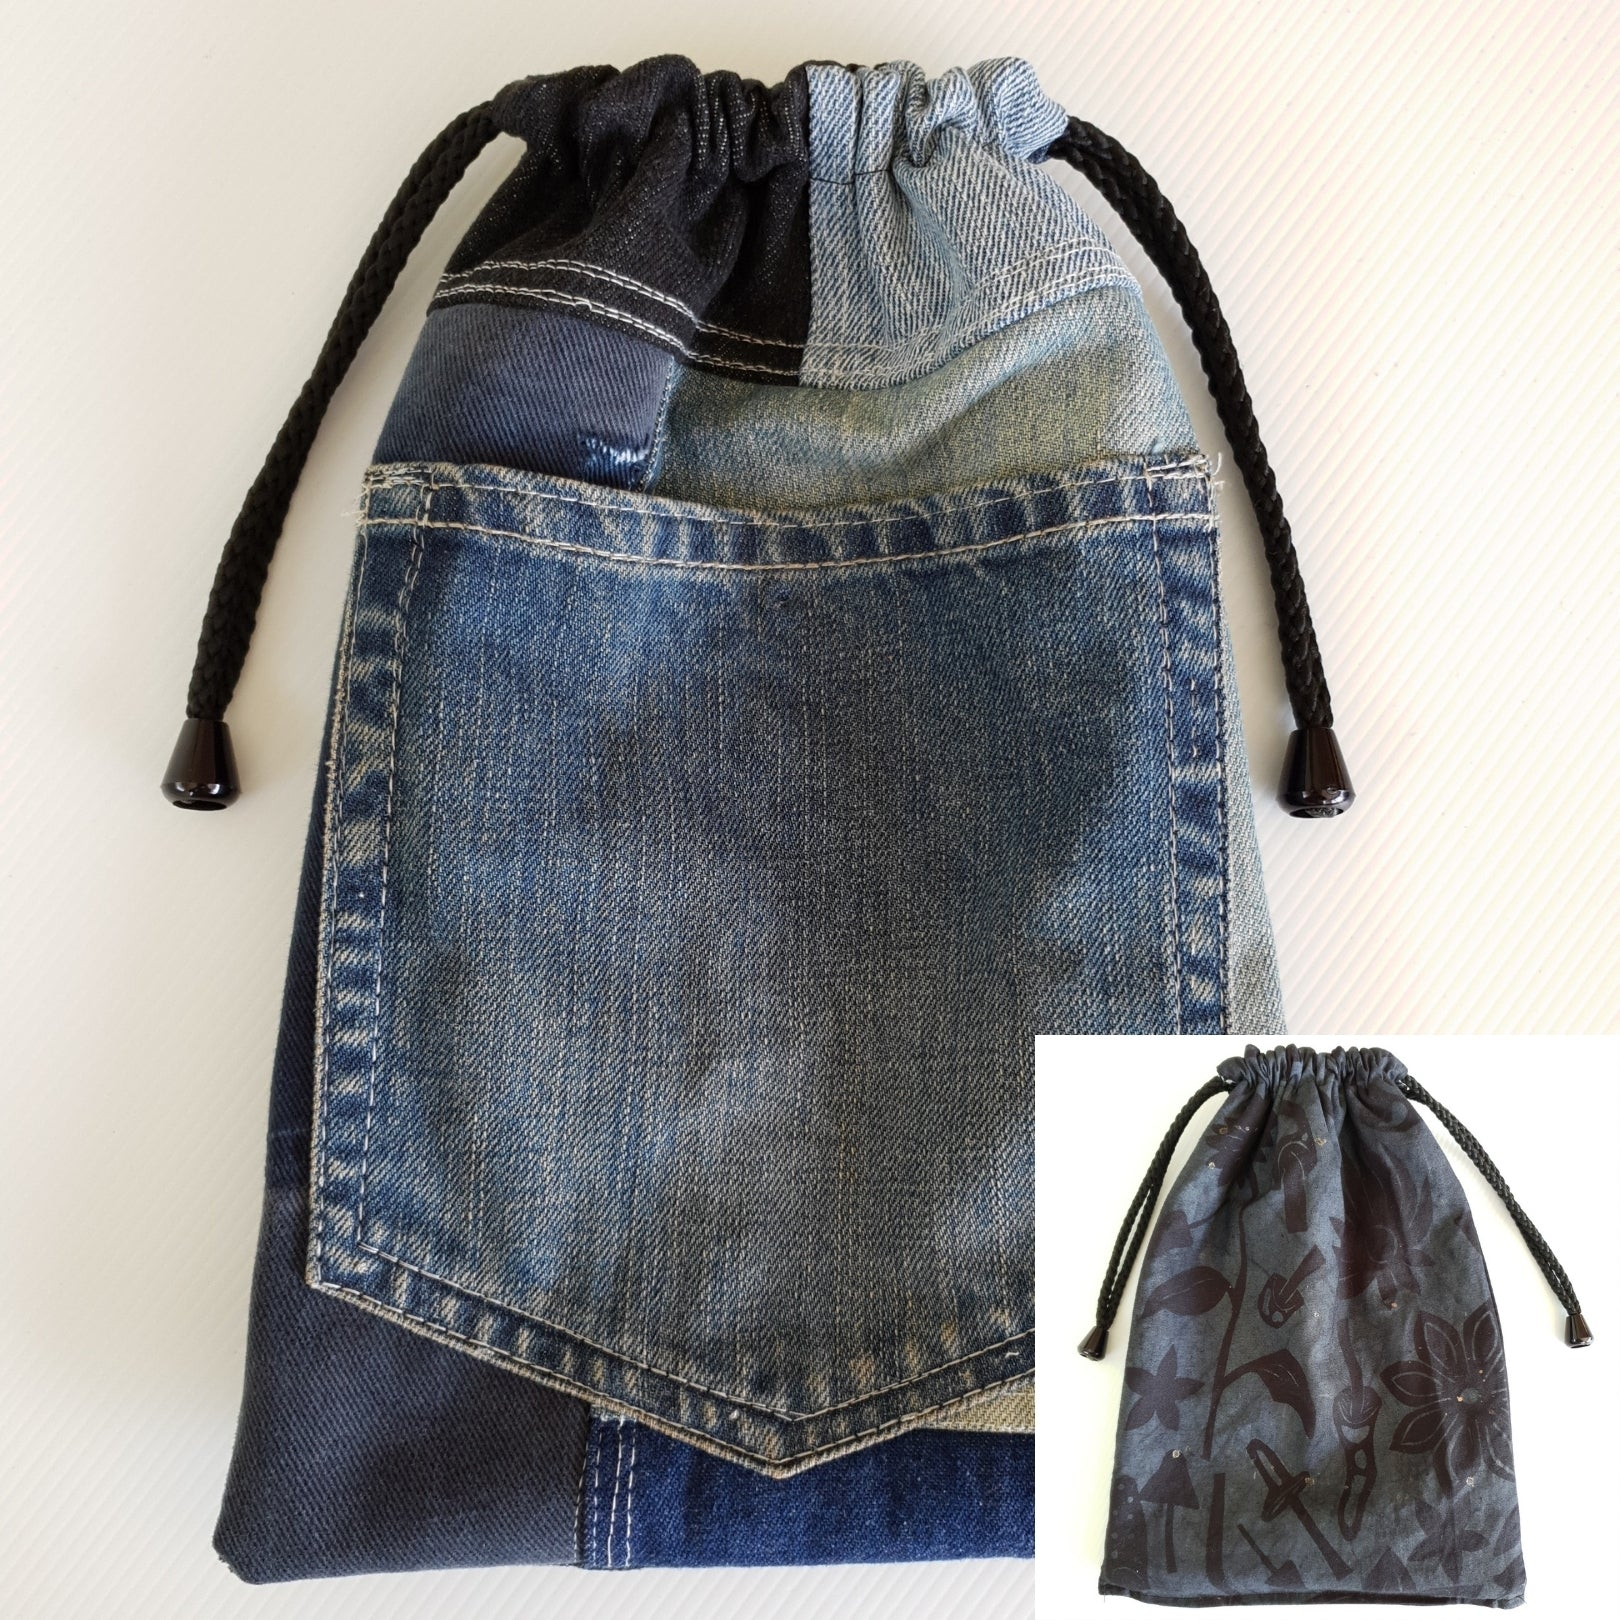 MAGIC Bag - Indigo Hue Mushroom Lining - Corduroy feature Denim Outer